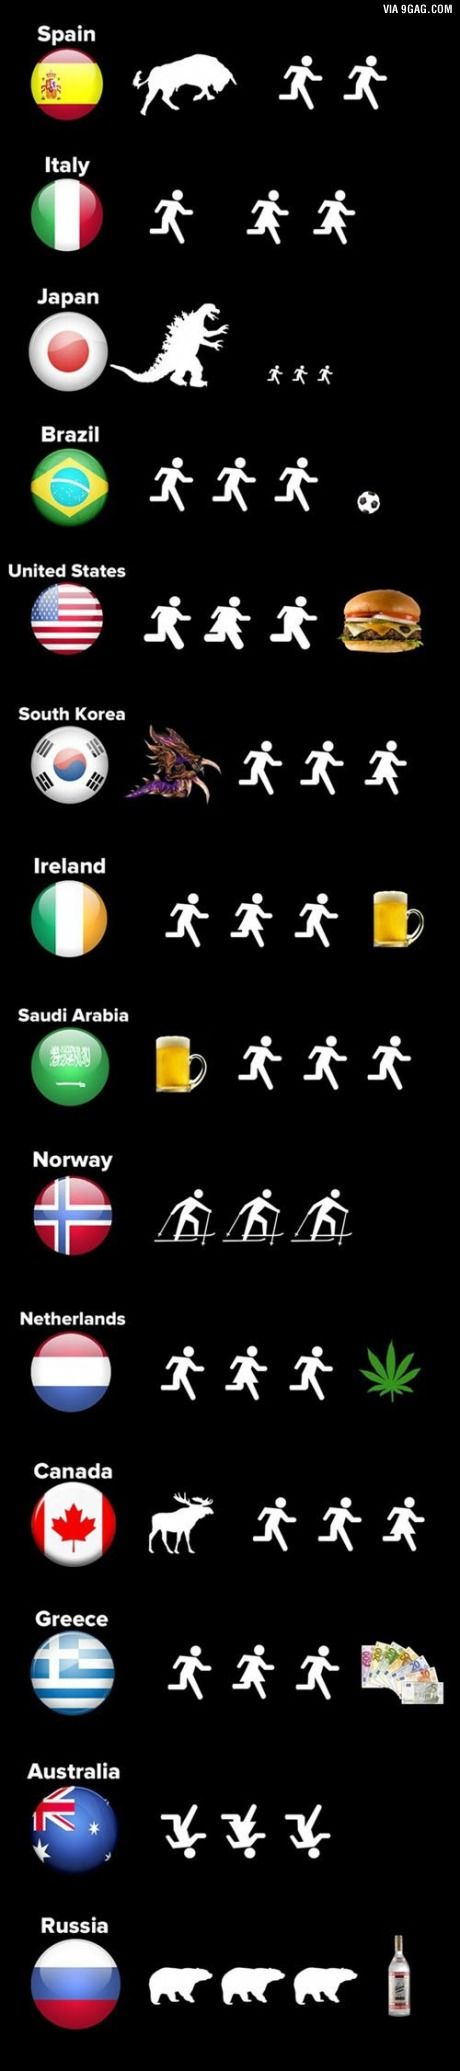 Why people run in different countries? #9Gag #funny #humor